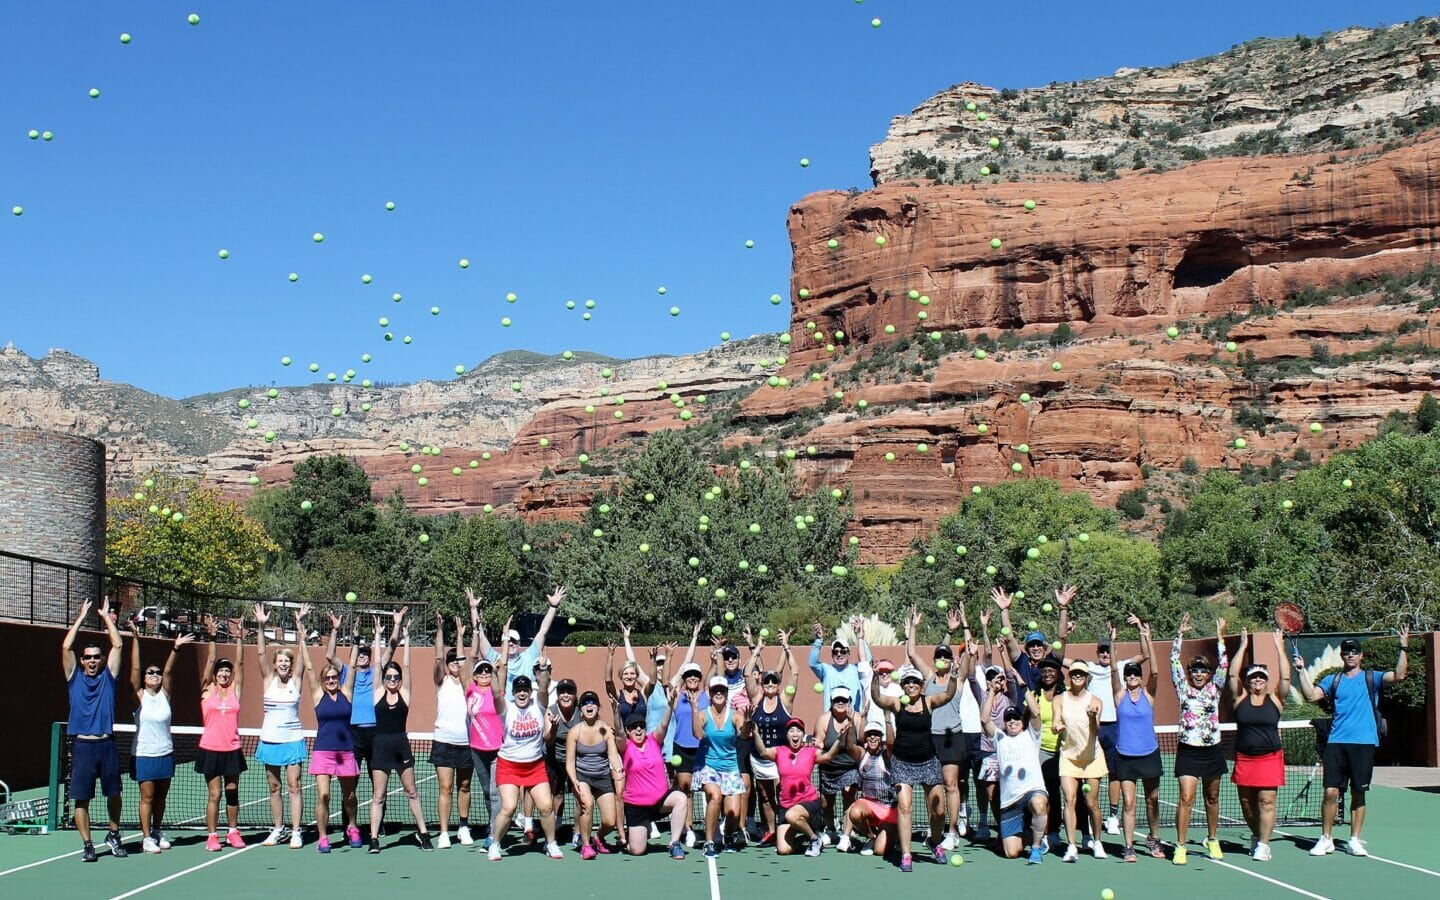 group of people on tennis court throwing tennis balls in the air